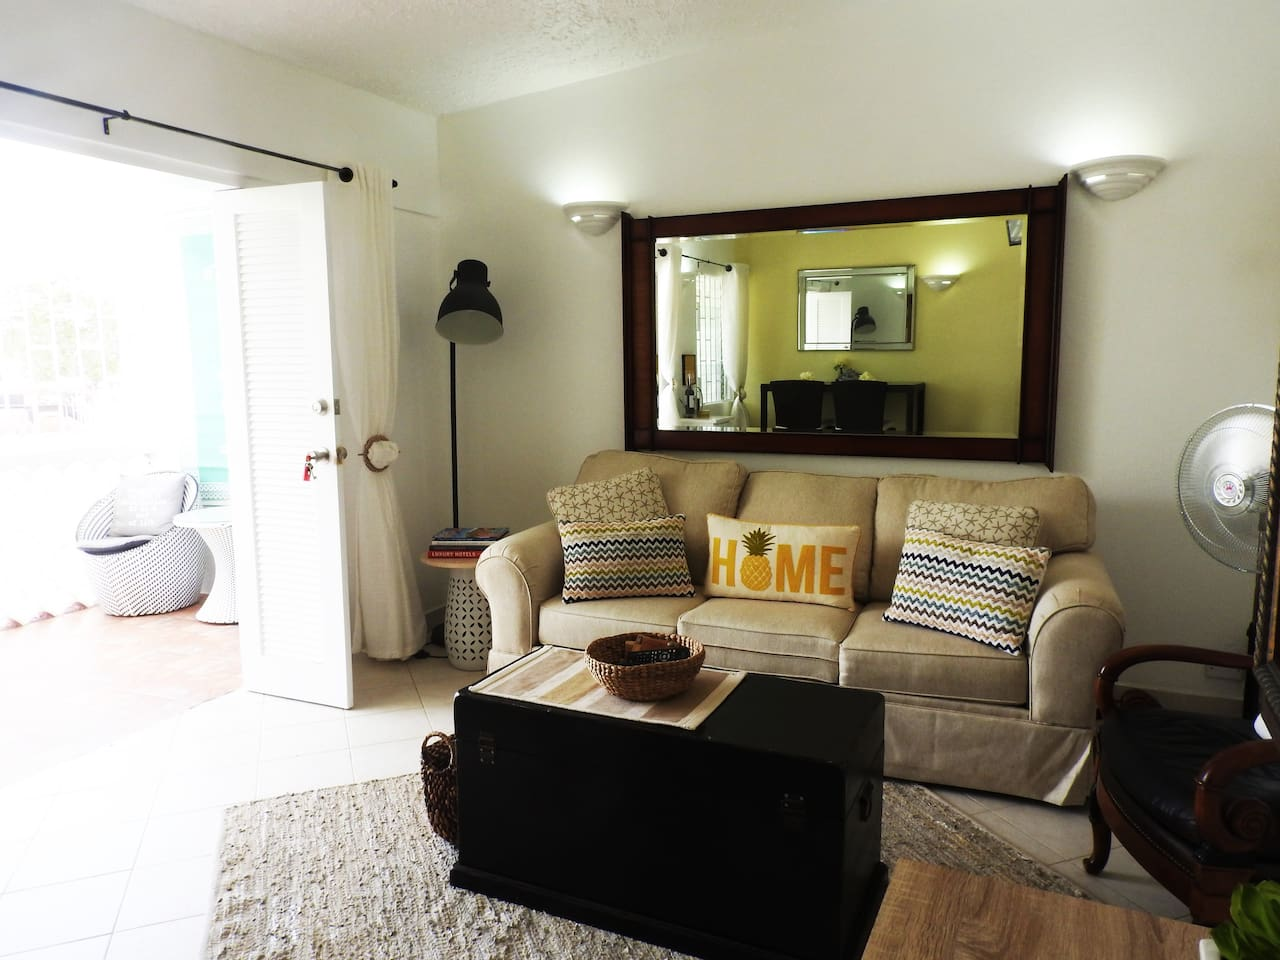 SEABREEZE CONDO IS HAPPY TO WELCOME YOU TO BARBADOS!